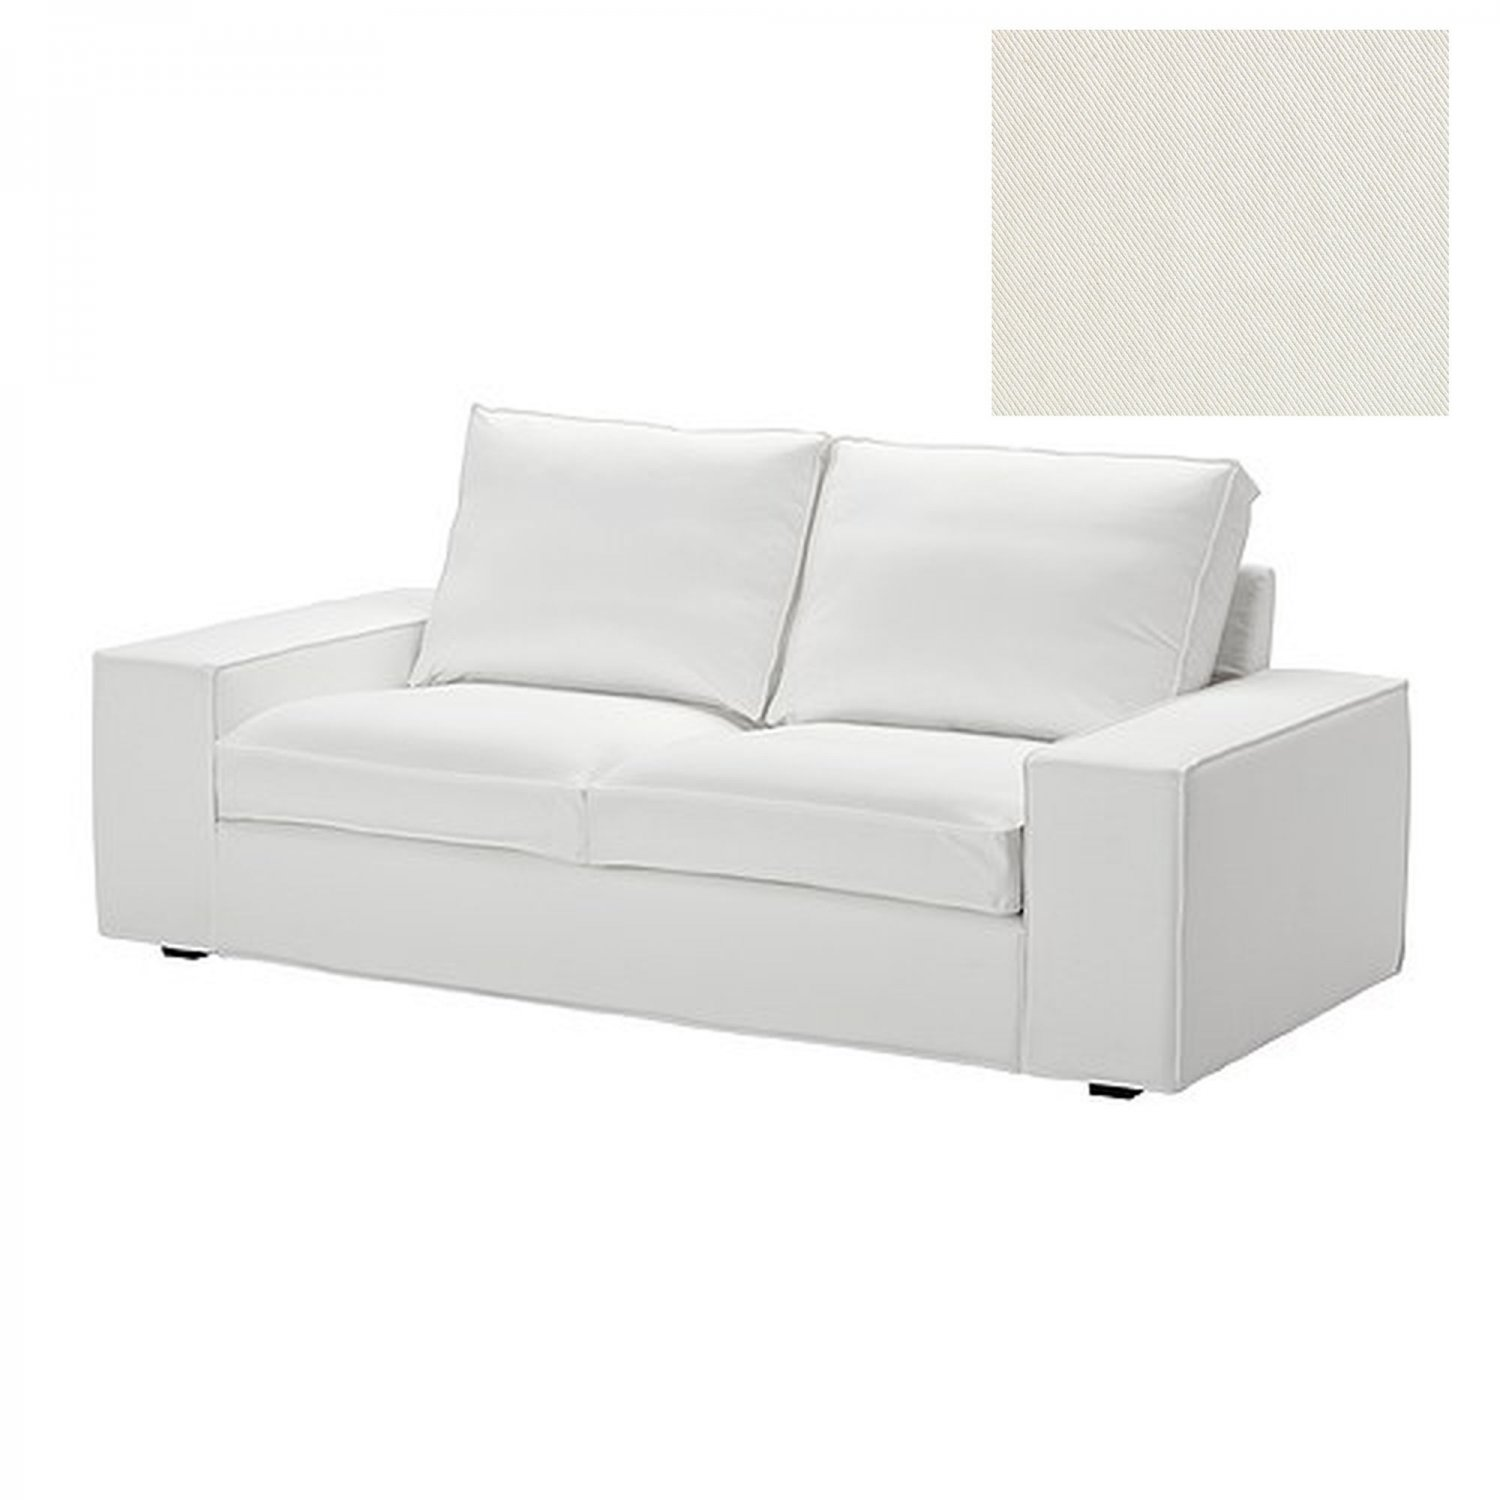 ikea kivik 2 seat sofa slipcover loveseat cover blekinge white cotton machine washable. Black Bedroom Furniture Sets. Home Design Ideas